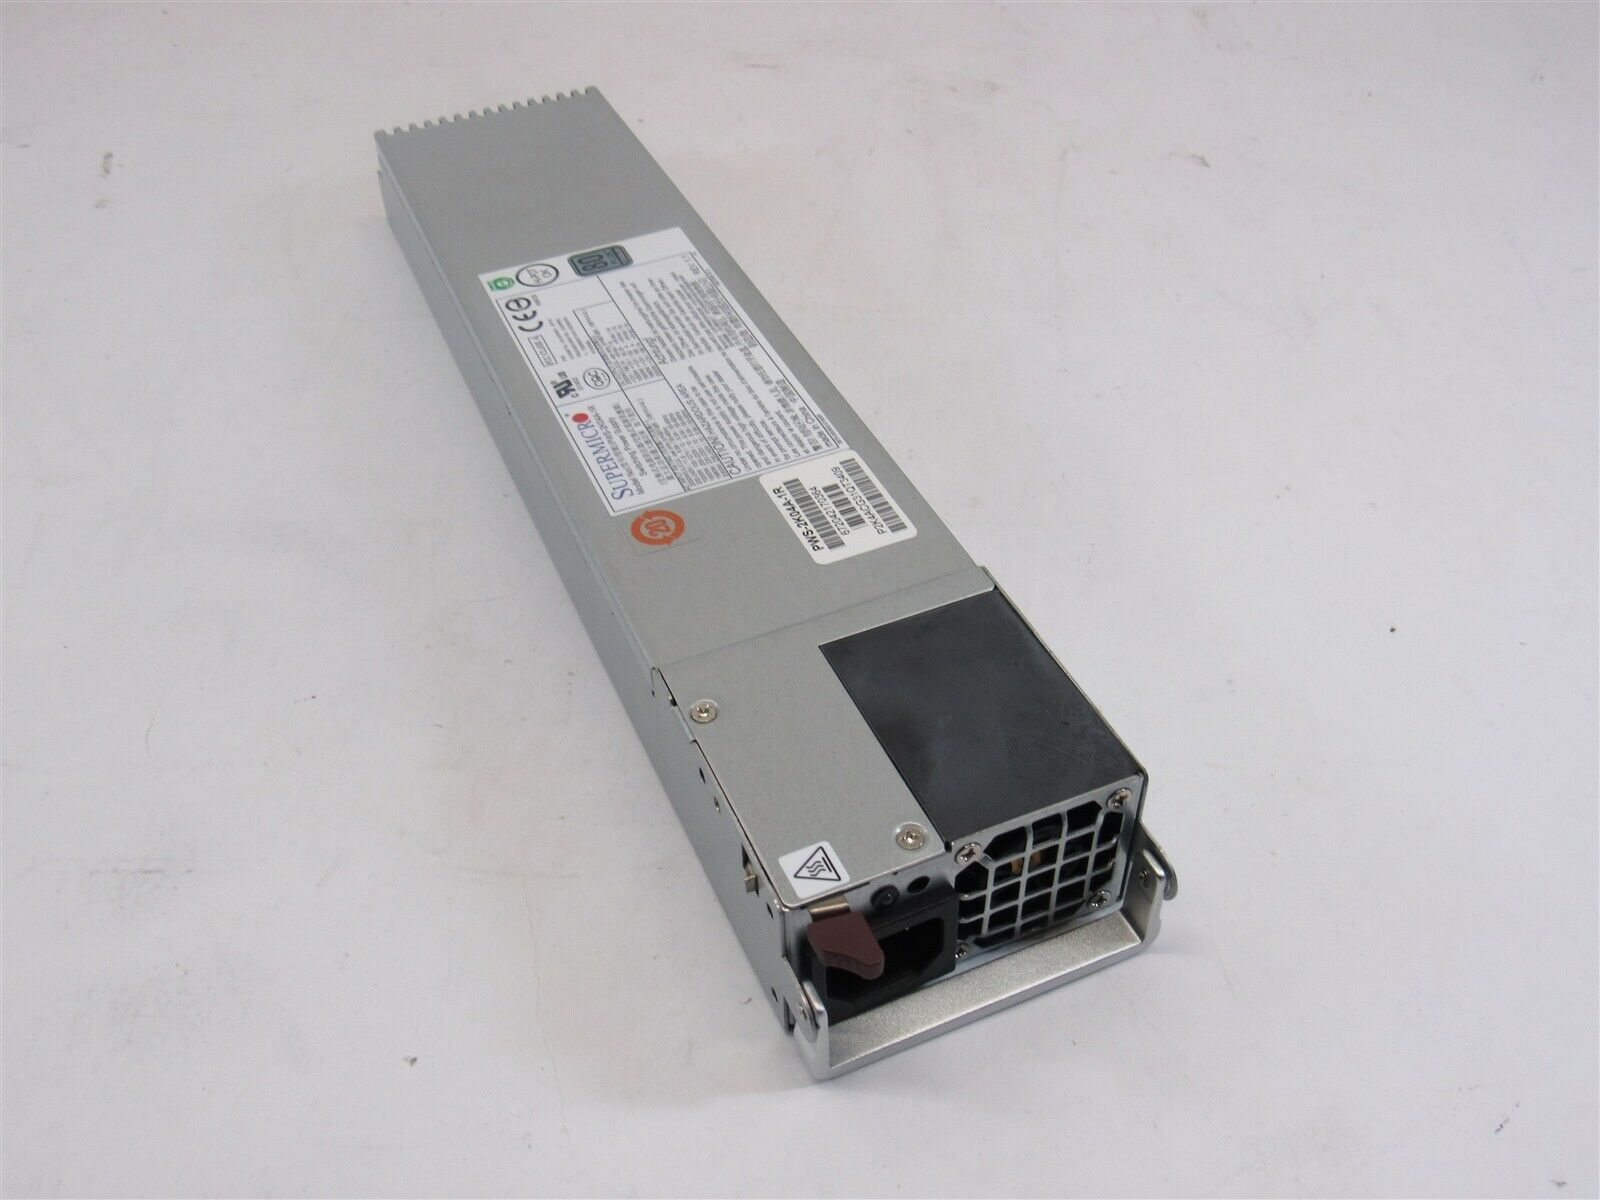 HC1R Supermicro PWS-2K04A-1R 2000W PSU Titanium Rated for TwinPro 2028TP